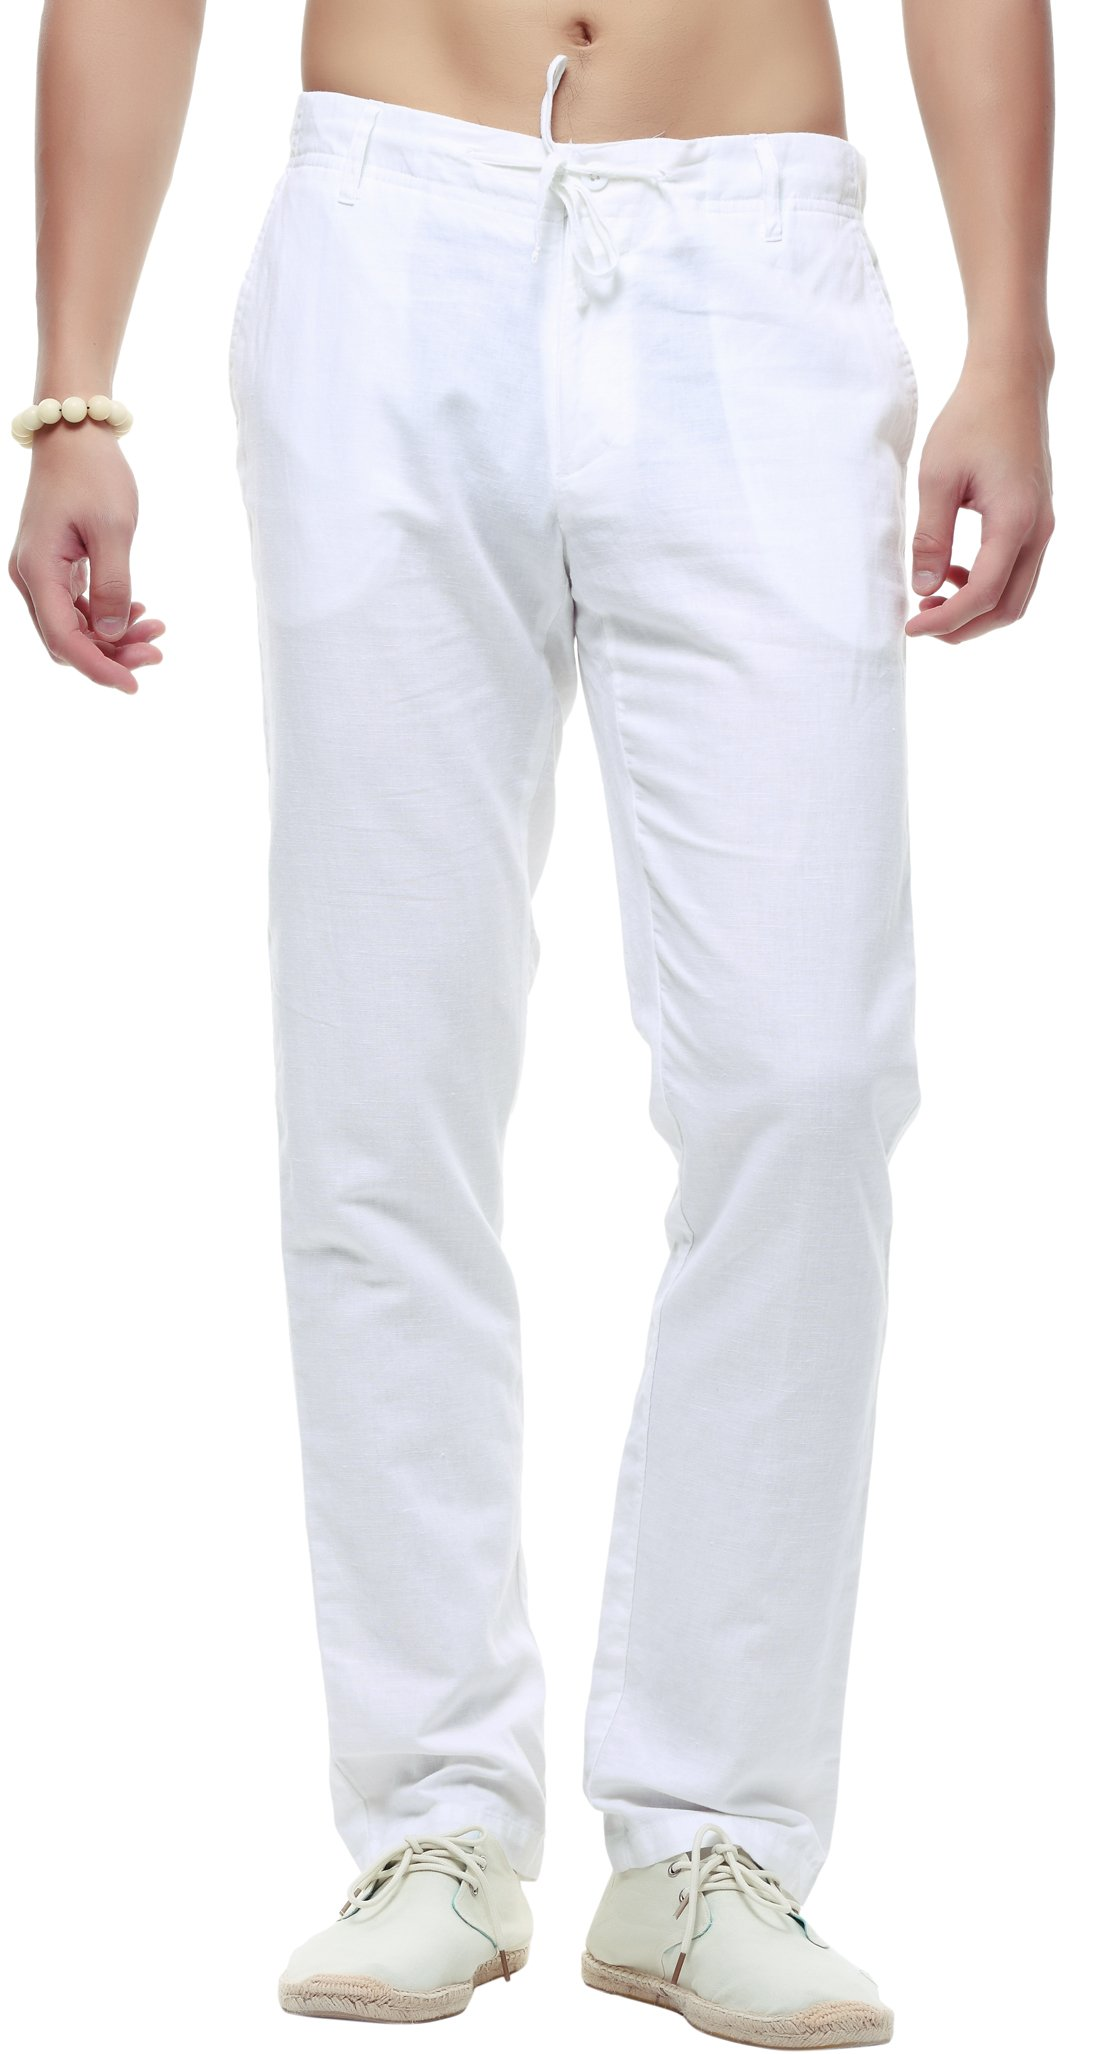 utcoco Men's Casual Drawstring Straight Fit Linen Beach Pants Flat Front (Large, White)